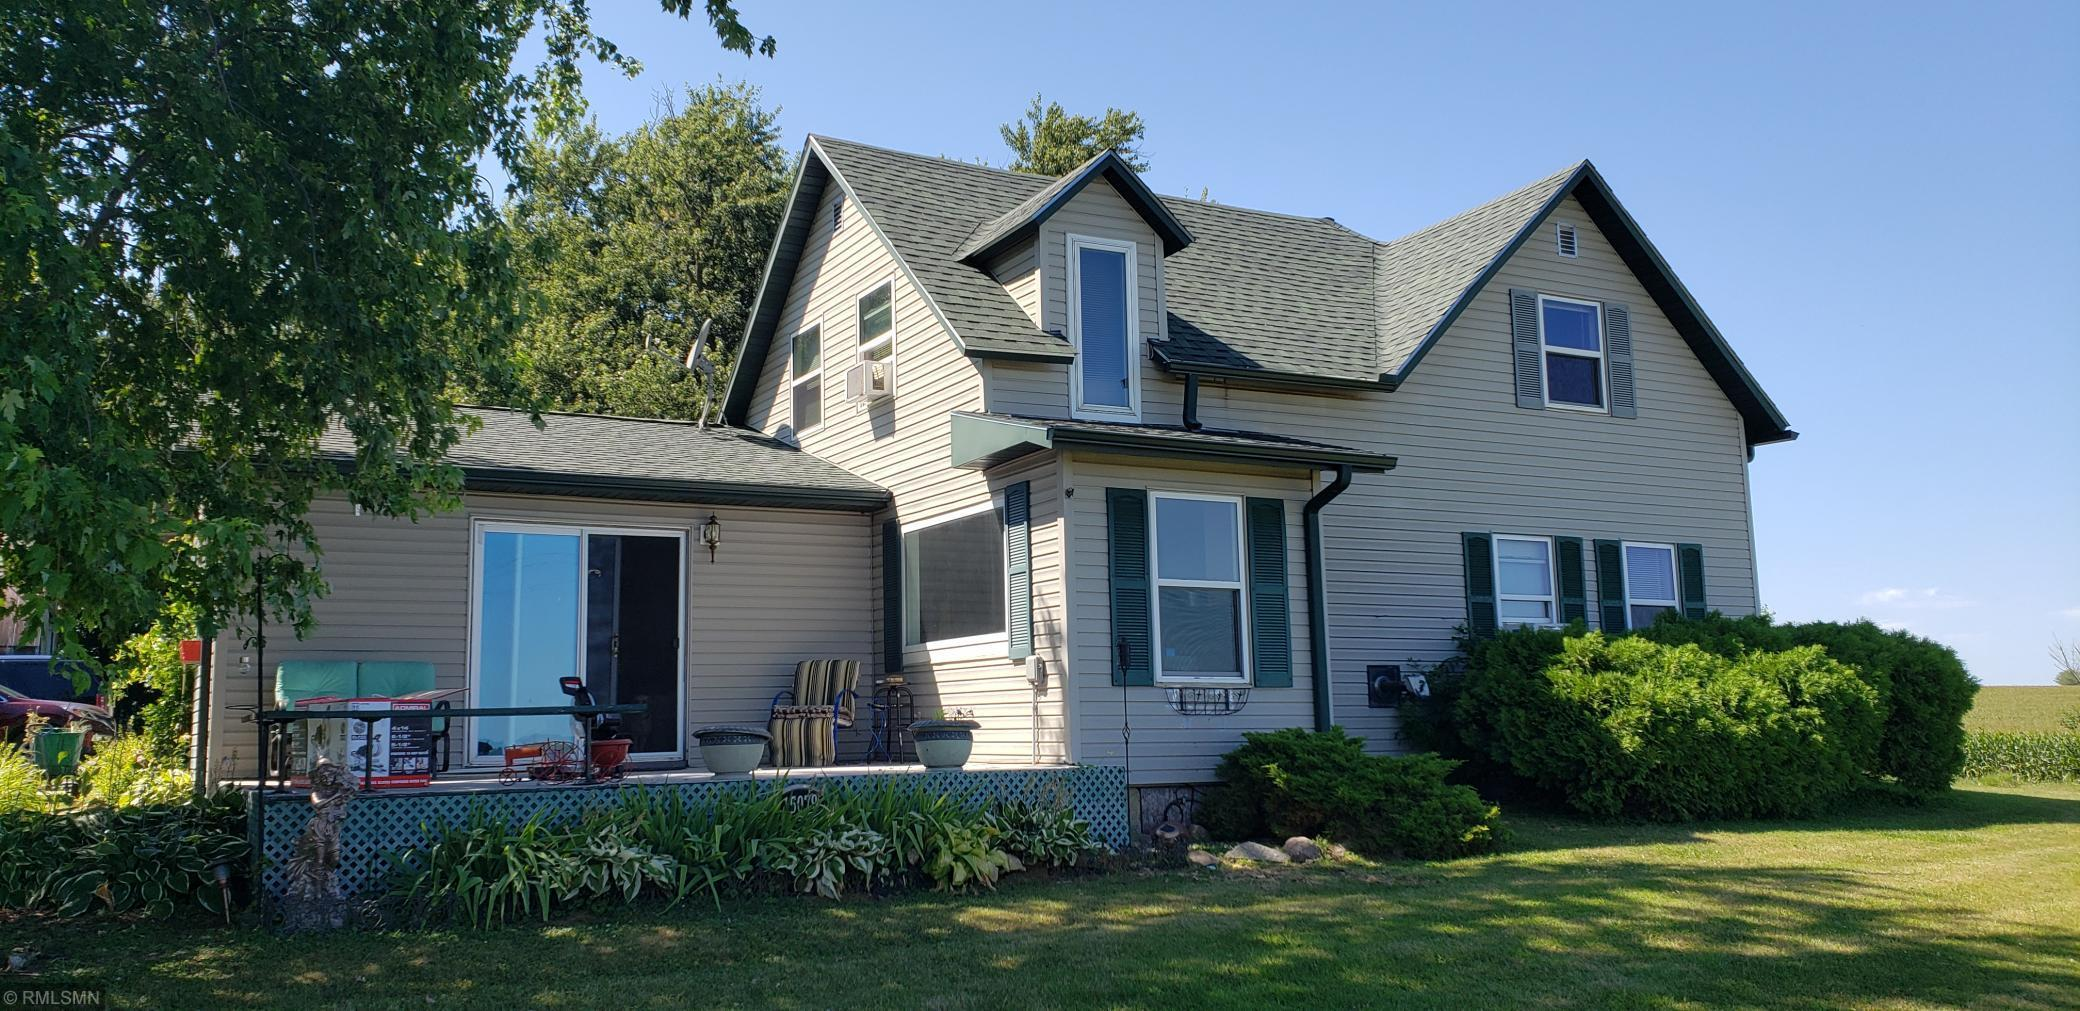 15079 County 5 Property Photo - Spring Valley, MN real estate listing